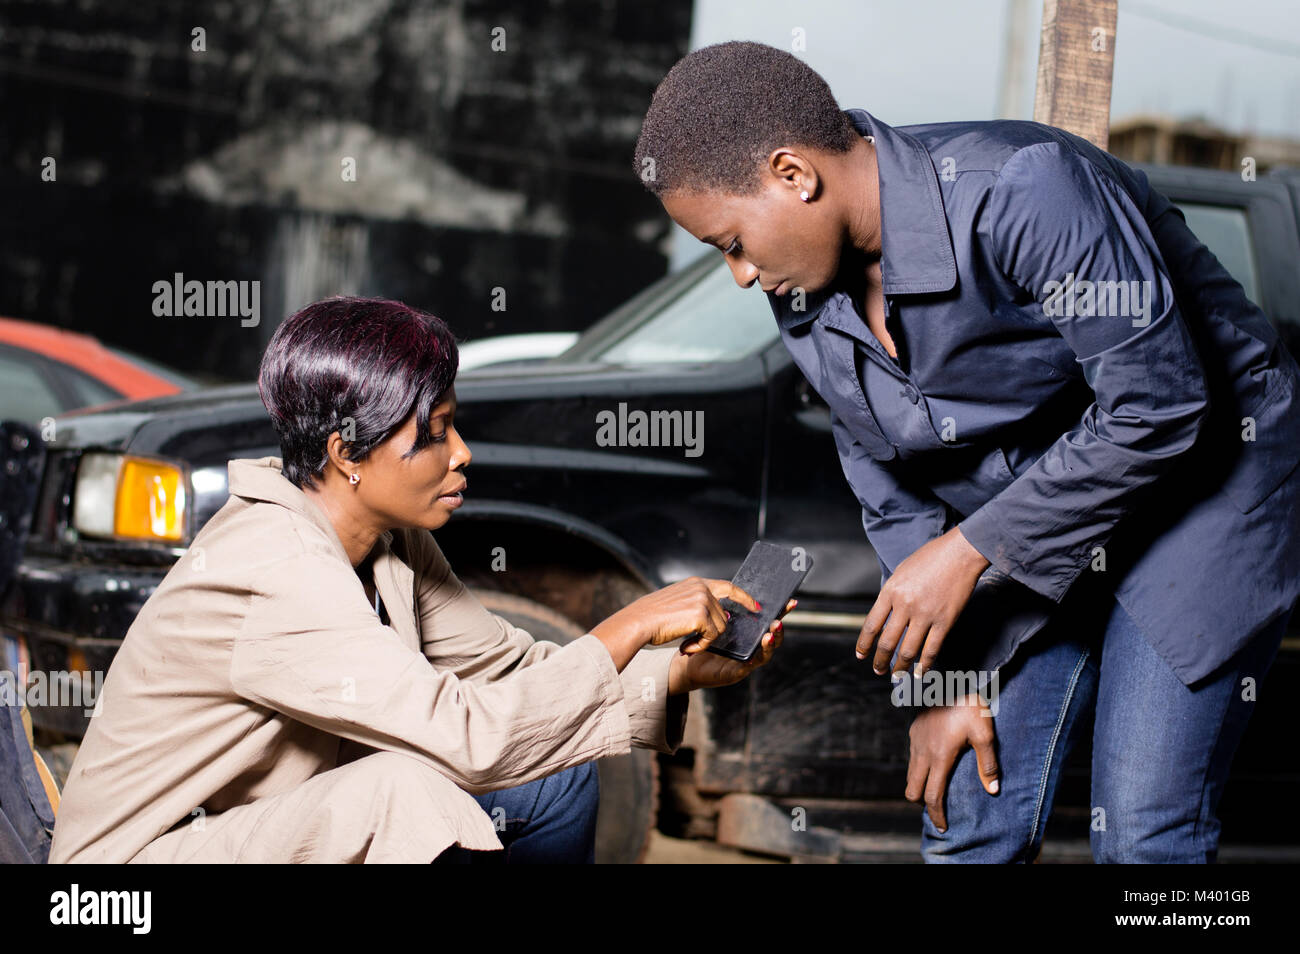 Young woman shows a room exam room she wants for her car to her mechanic in her phone. - Stock Image